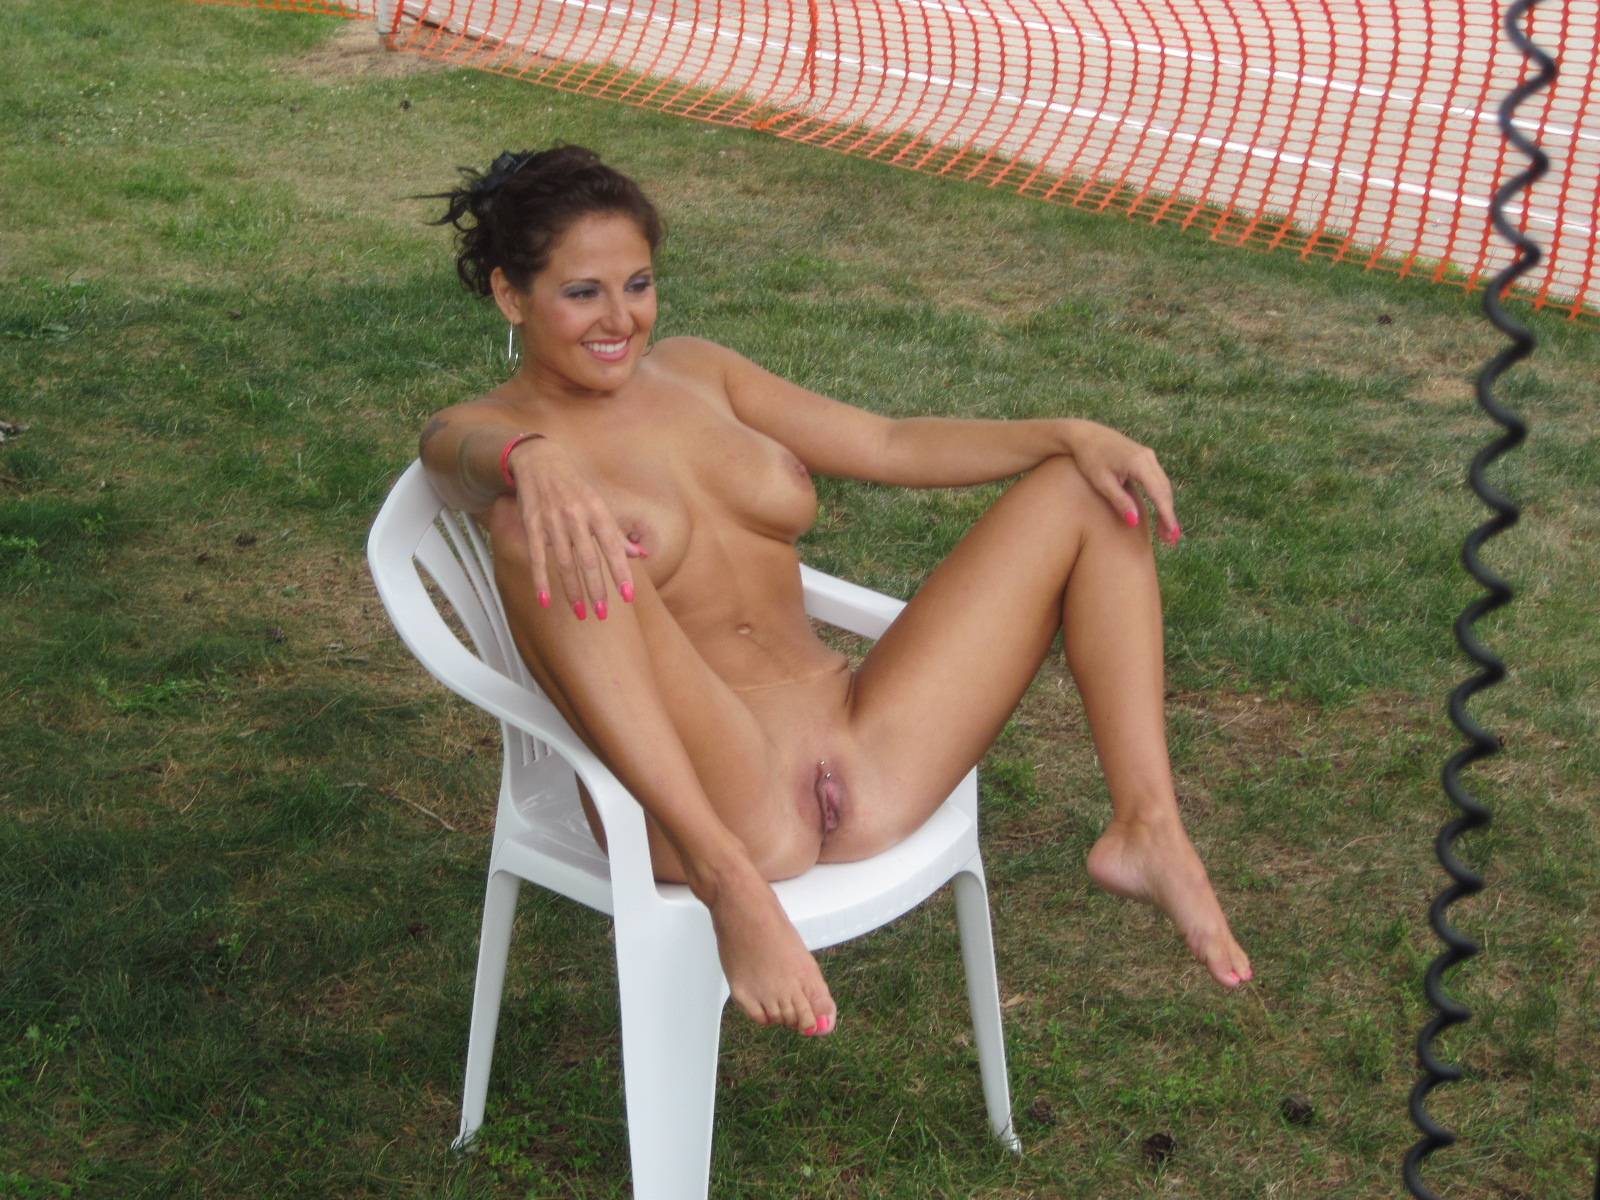 Nude women photos